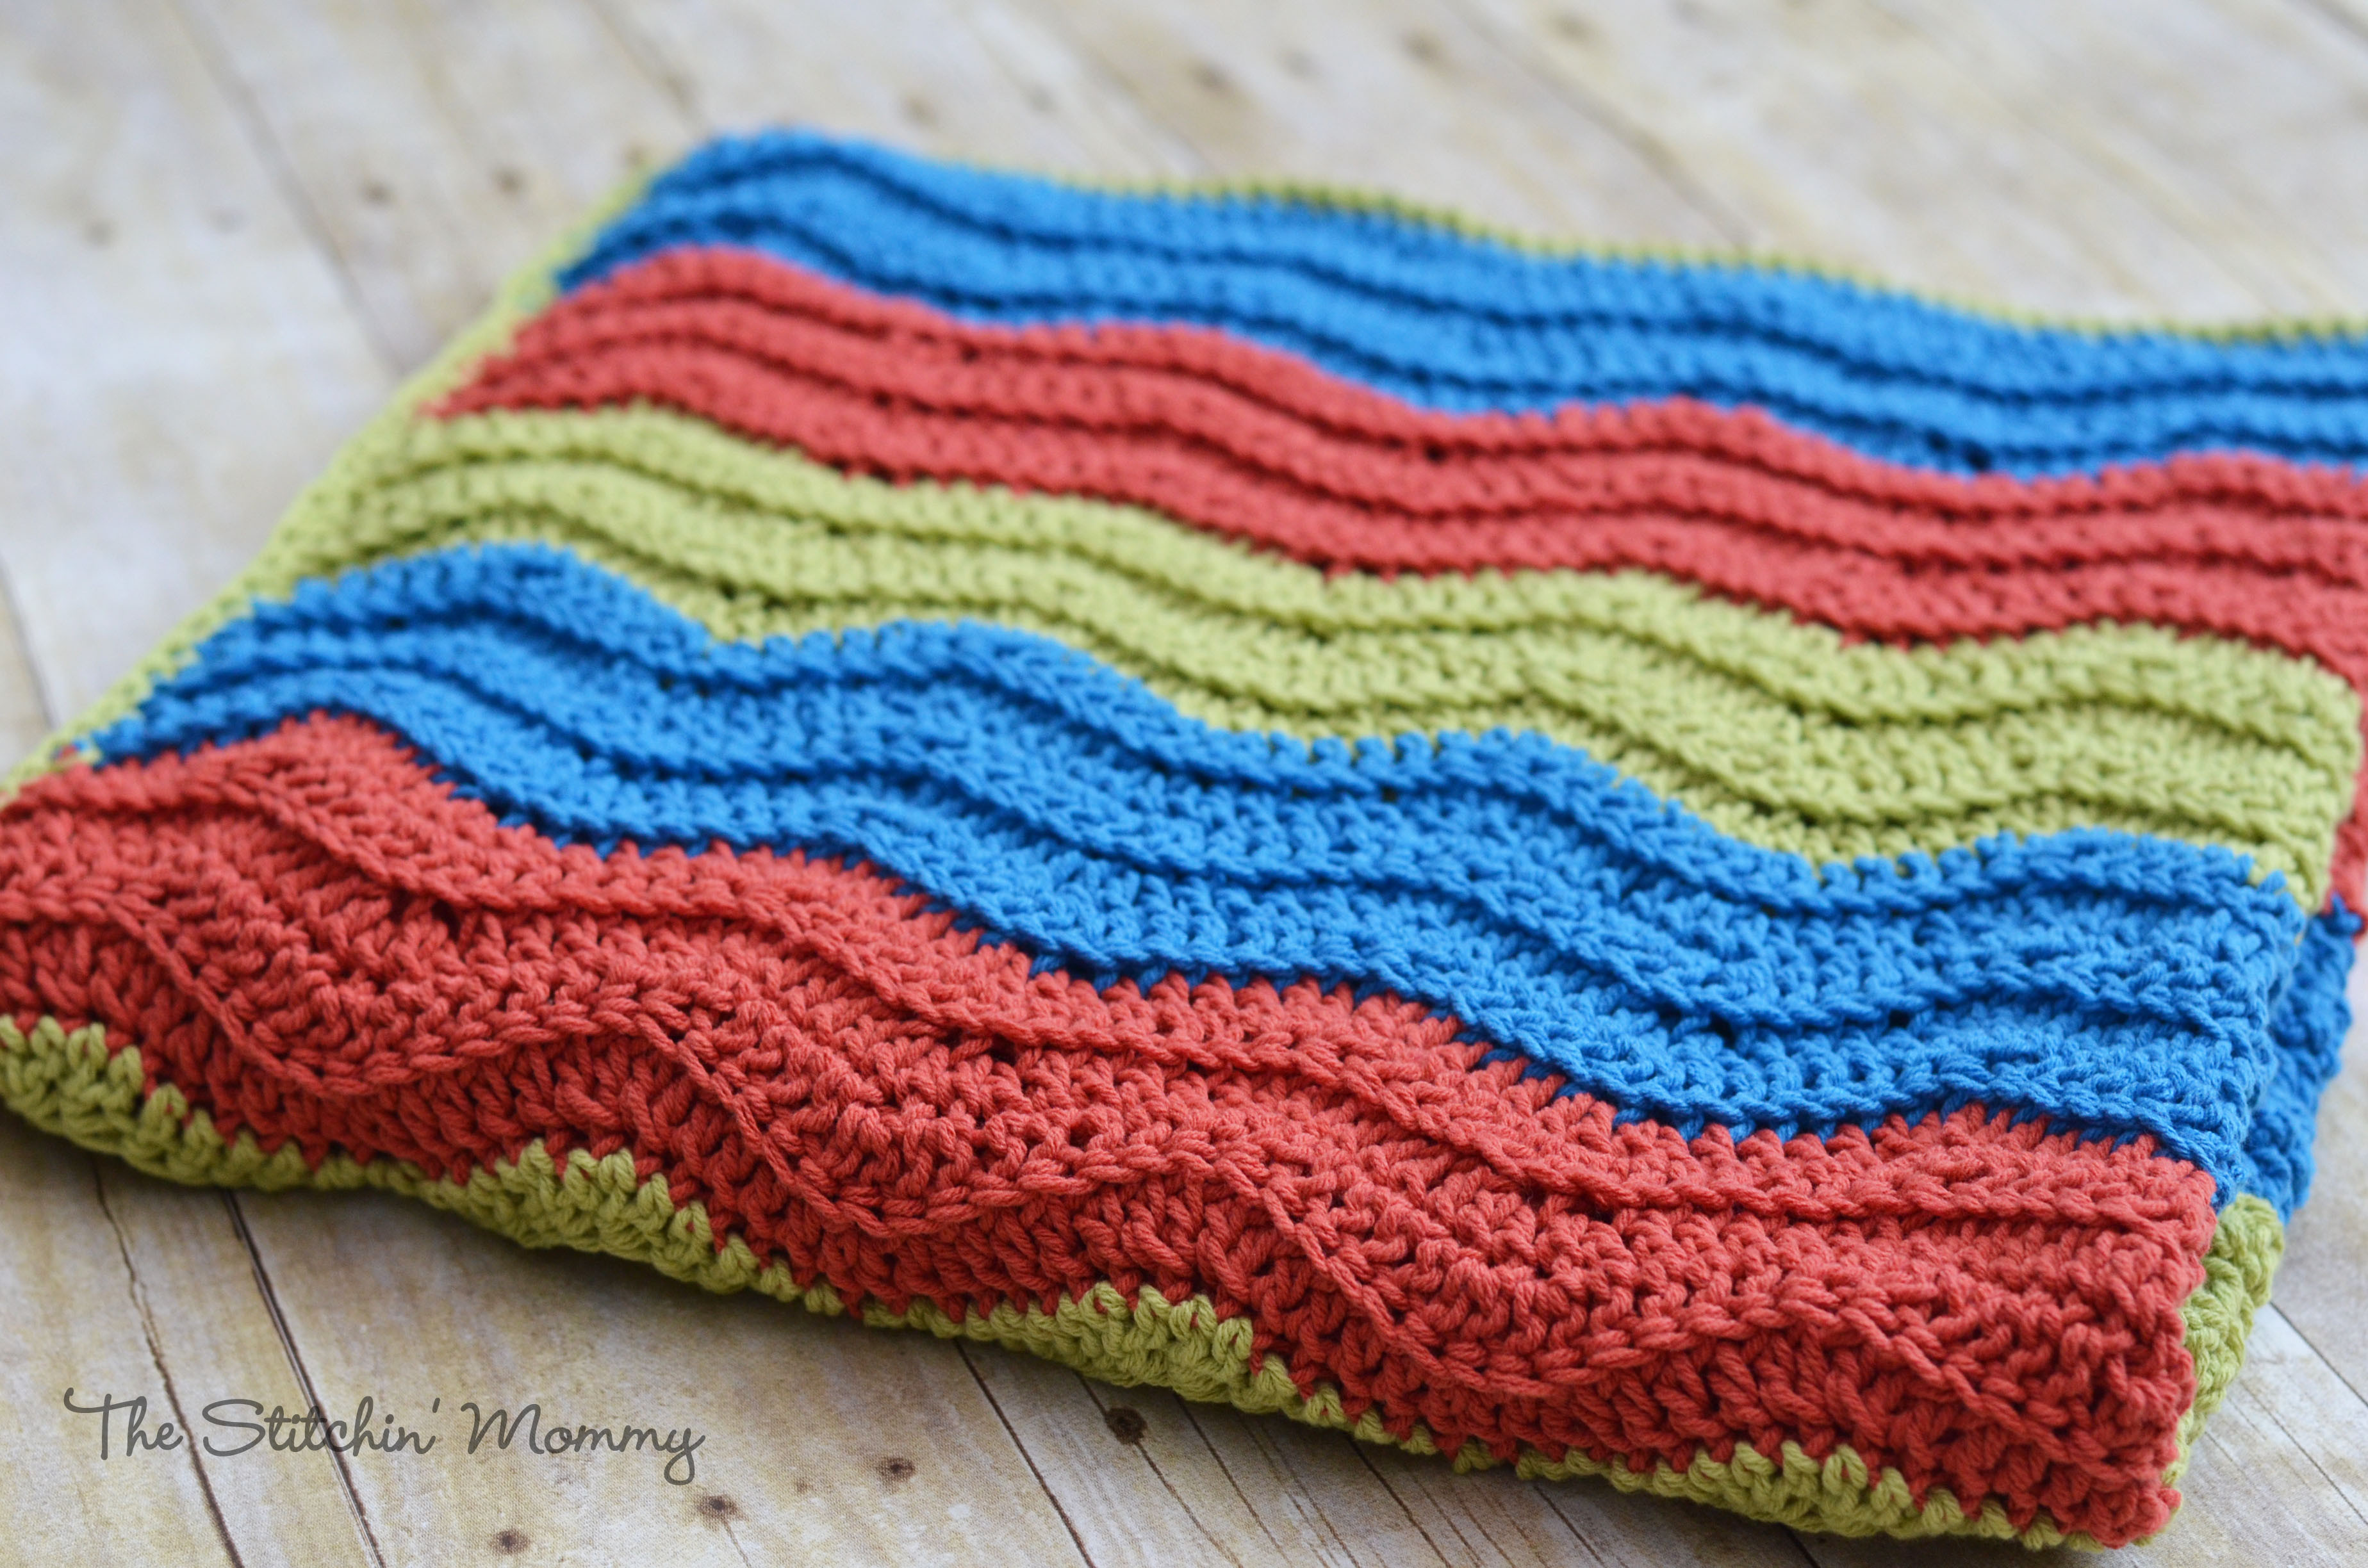 Crochet Quilts Beautiful Easy Crochet Ripple Blanket the Stitchin Mommy Of Unique 45 Pics Crochet Quilts